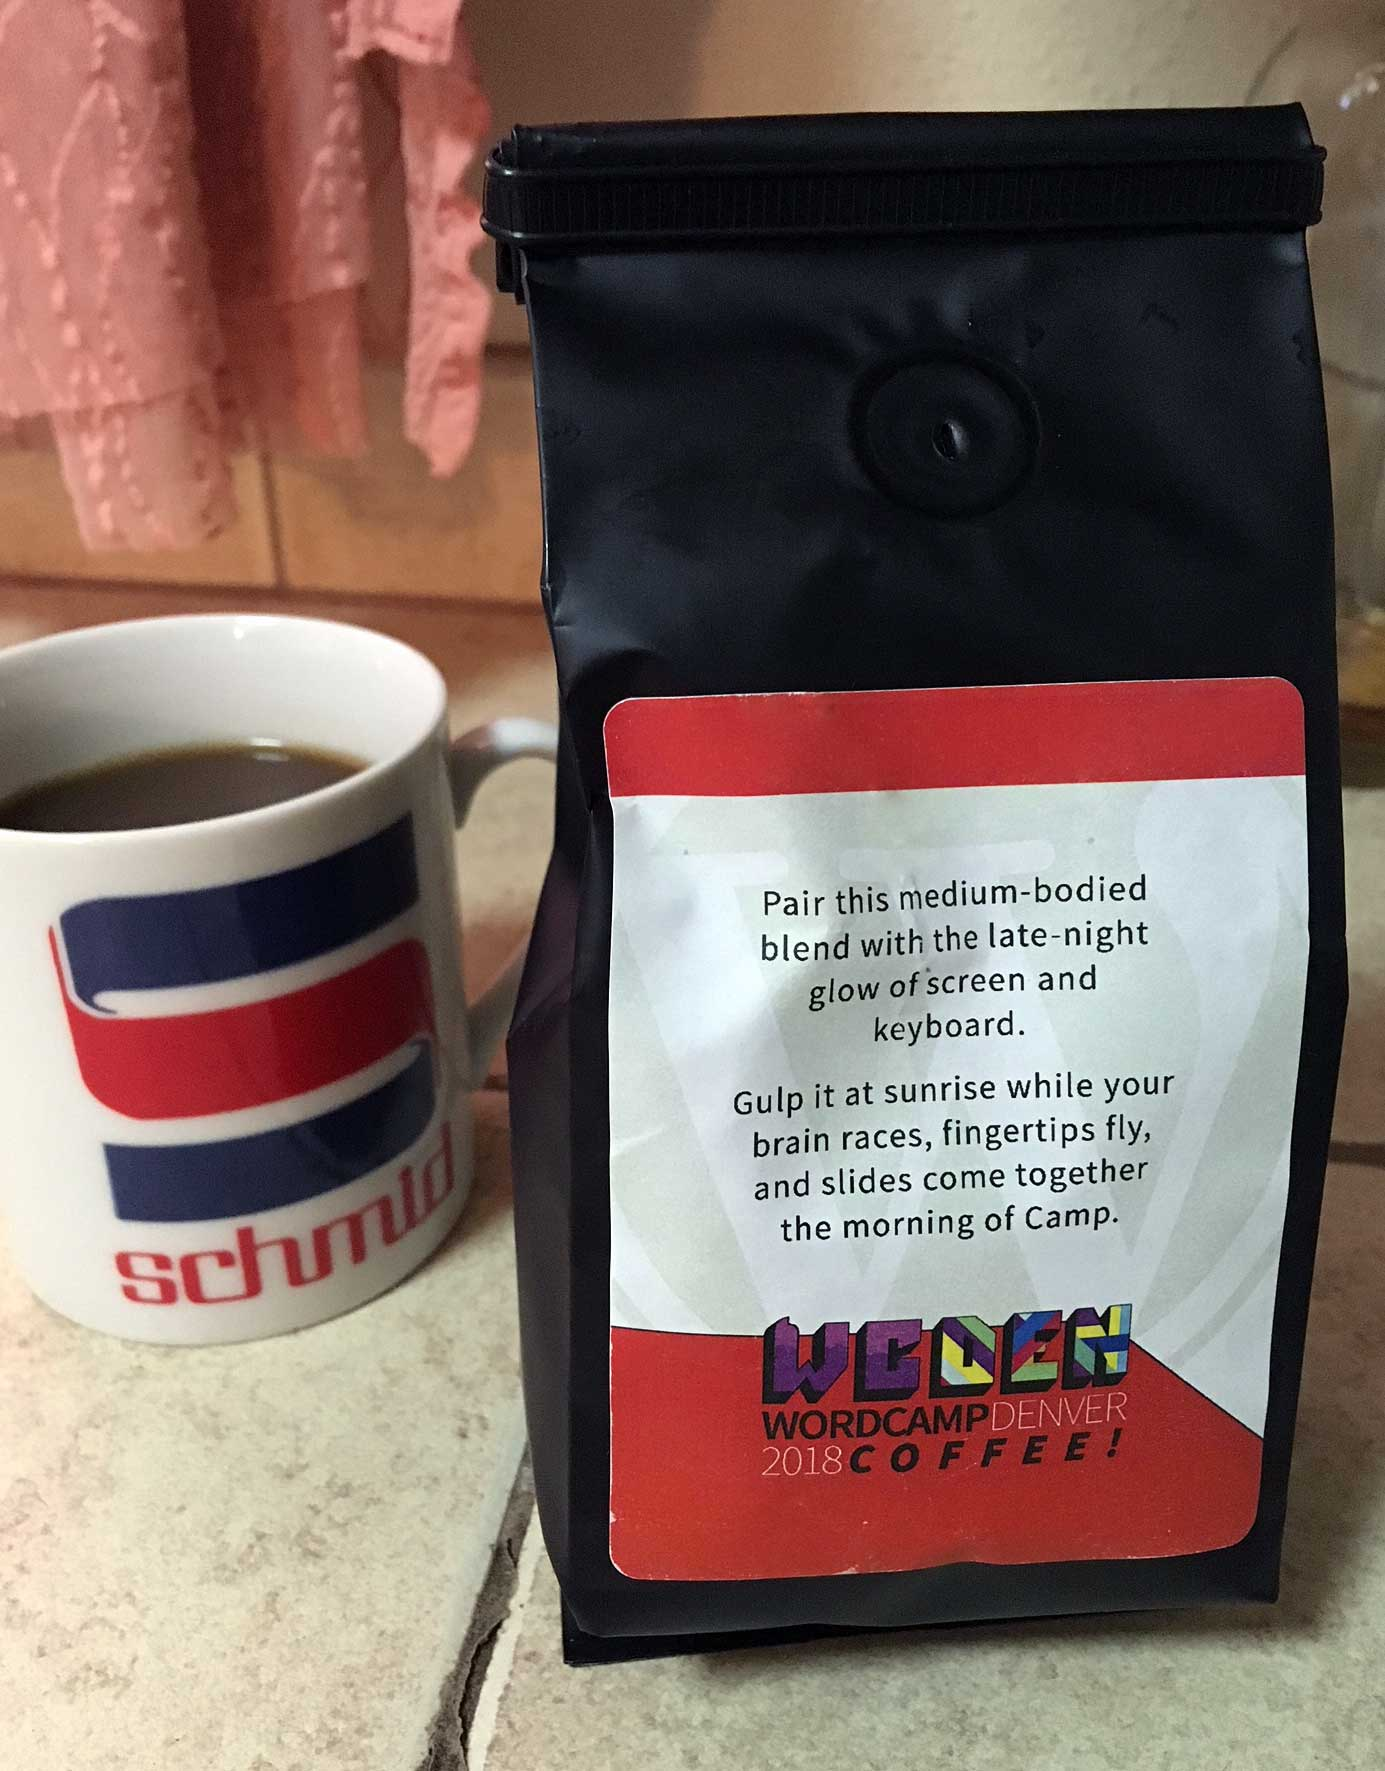 WCDenver 2018 coffee speaker's gift